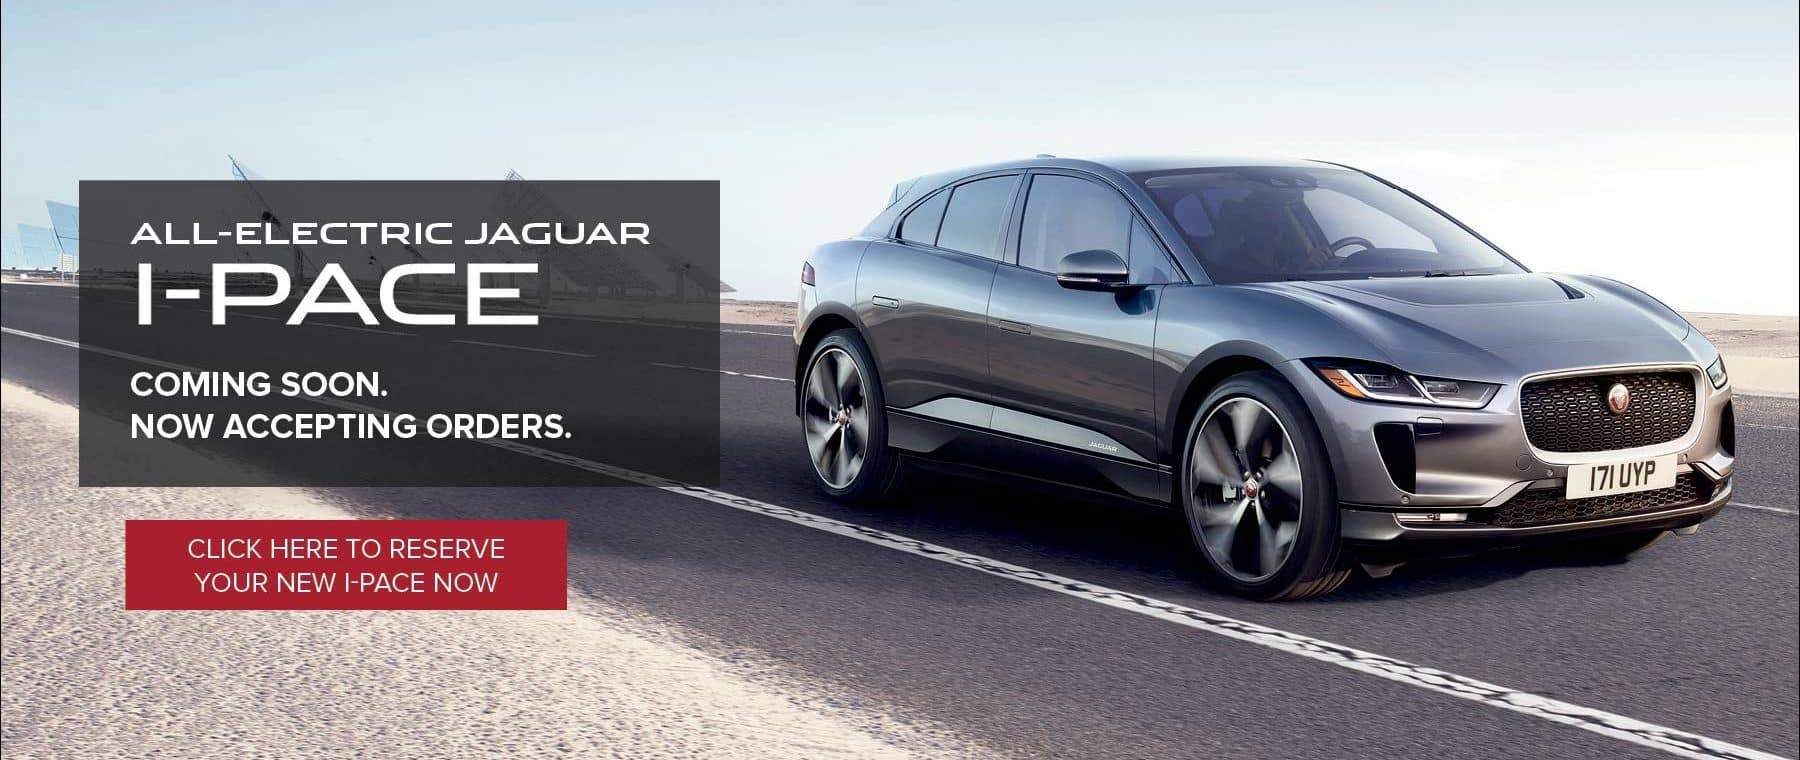 dealers in us contact ca hills jaguar anaheim dealership new